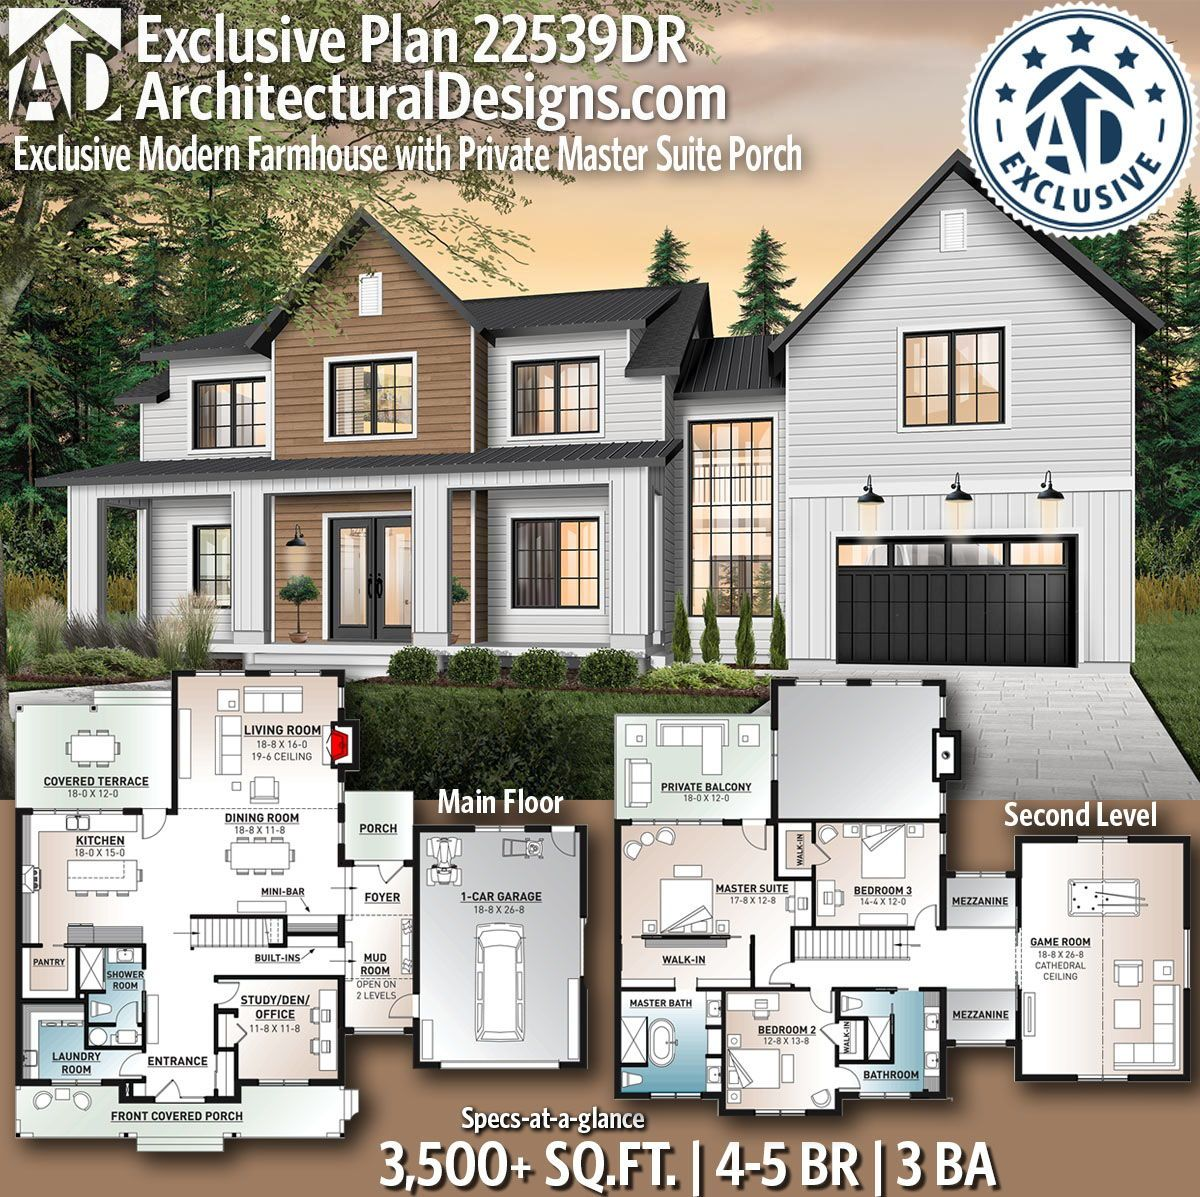 Ready when you are where do want to build dr adhouseplans modern farmhouse architecturaldesigns exclsuive houseplans also architectural designs house plans archdesigns on pinterest rh